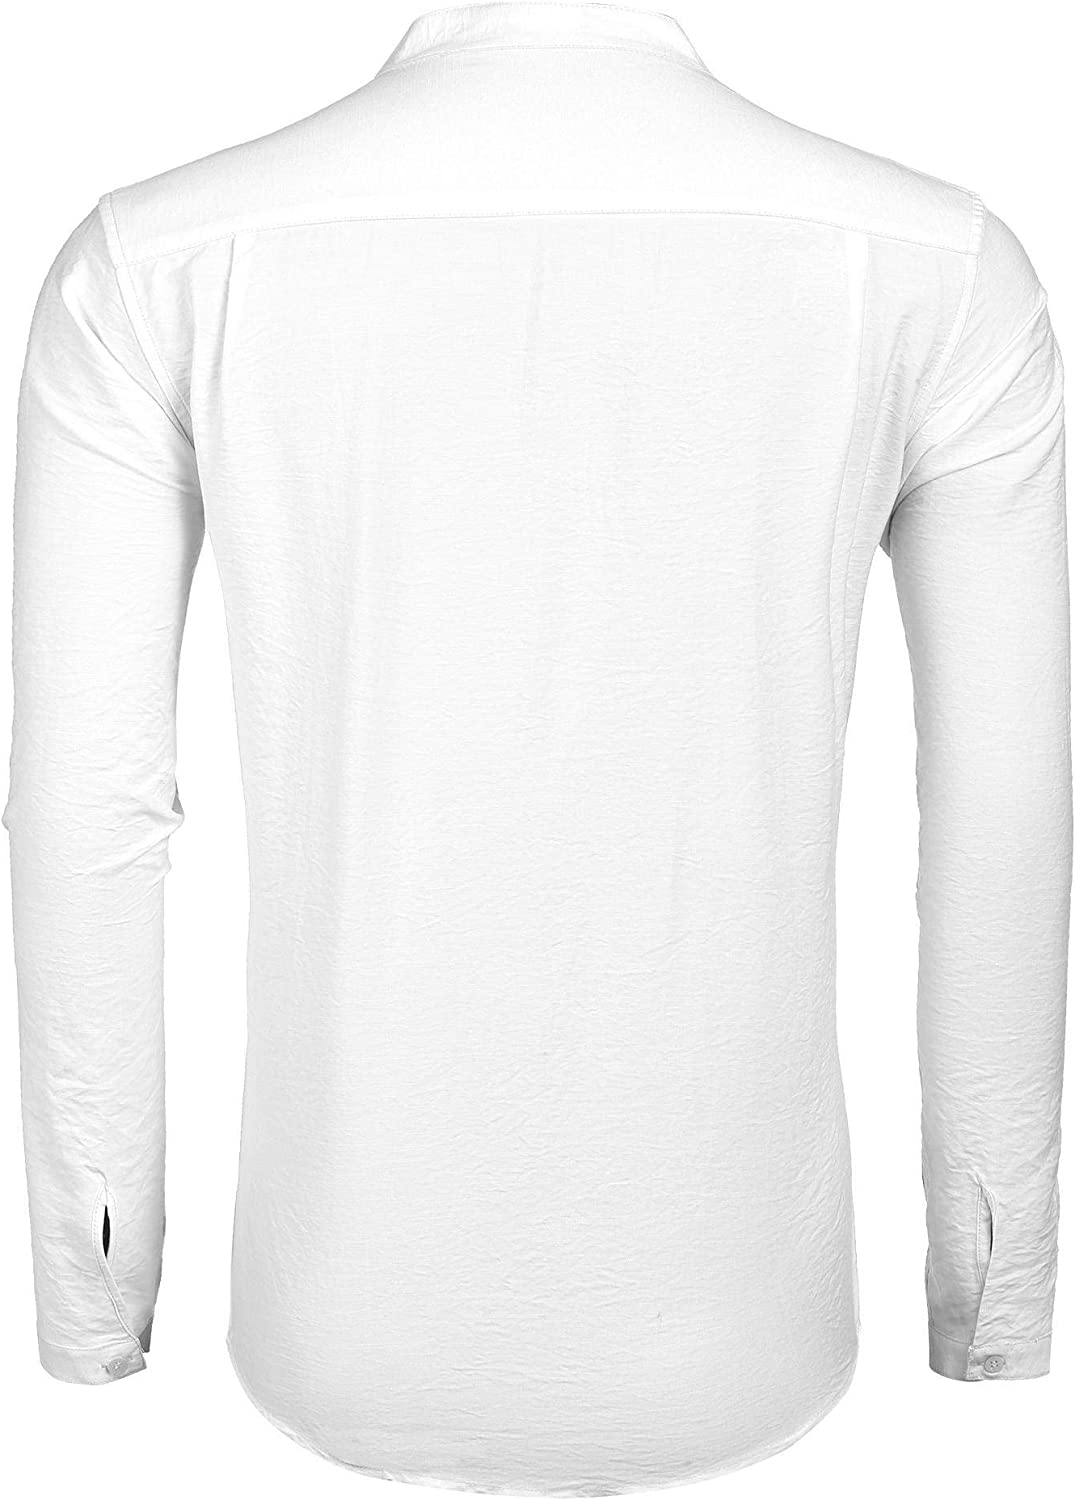 Kirew Mens Long Sleeve Tunic-Style Stand Collar Shirt with Pockets Casual Button-Down Shirts